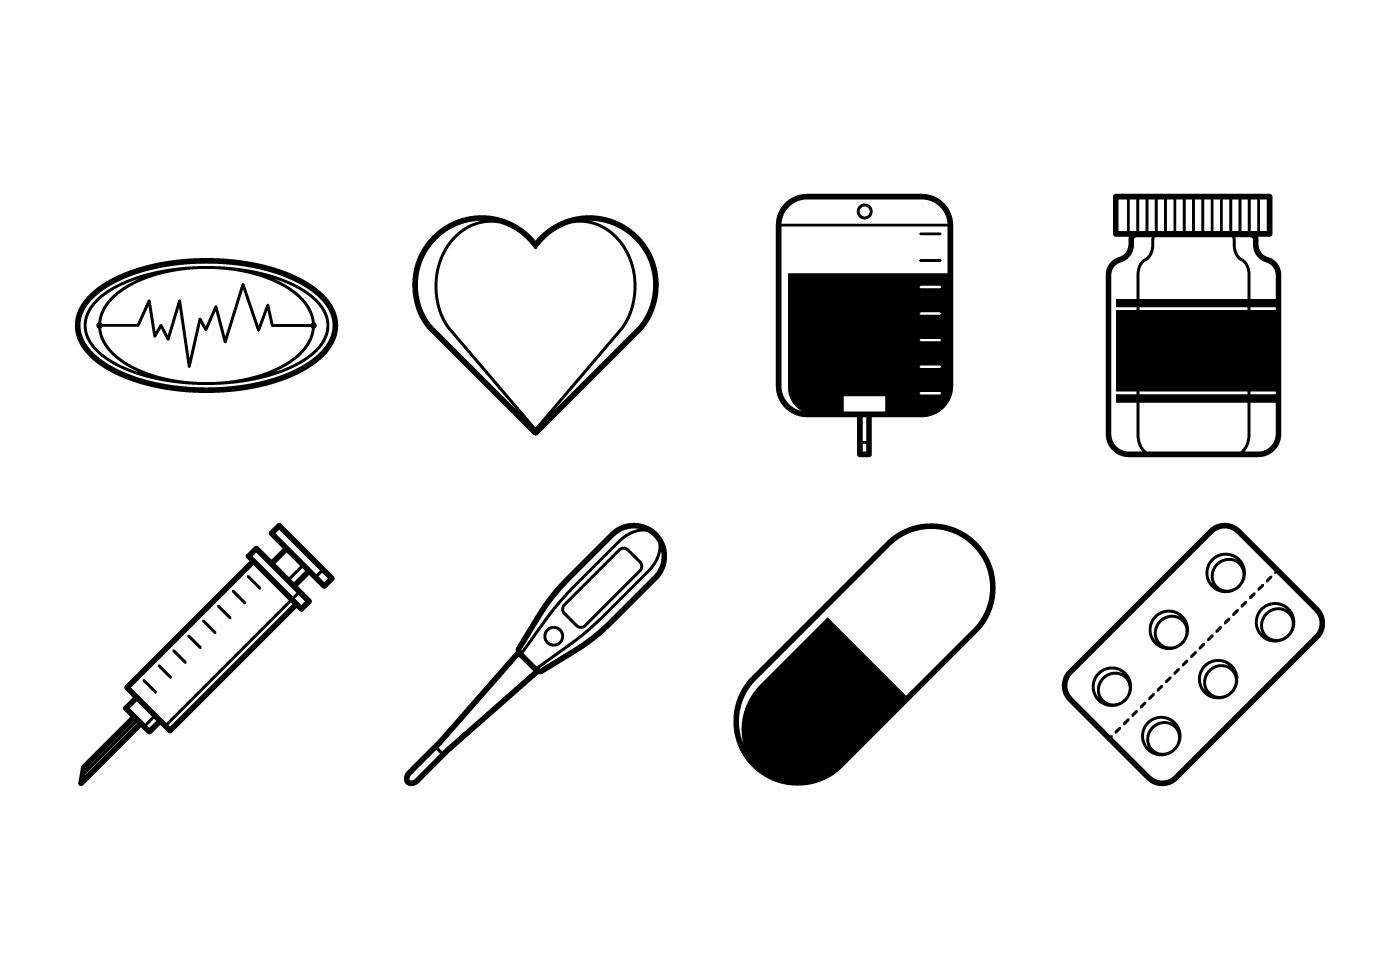 free-medical-stuff-icon-vector.jpg